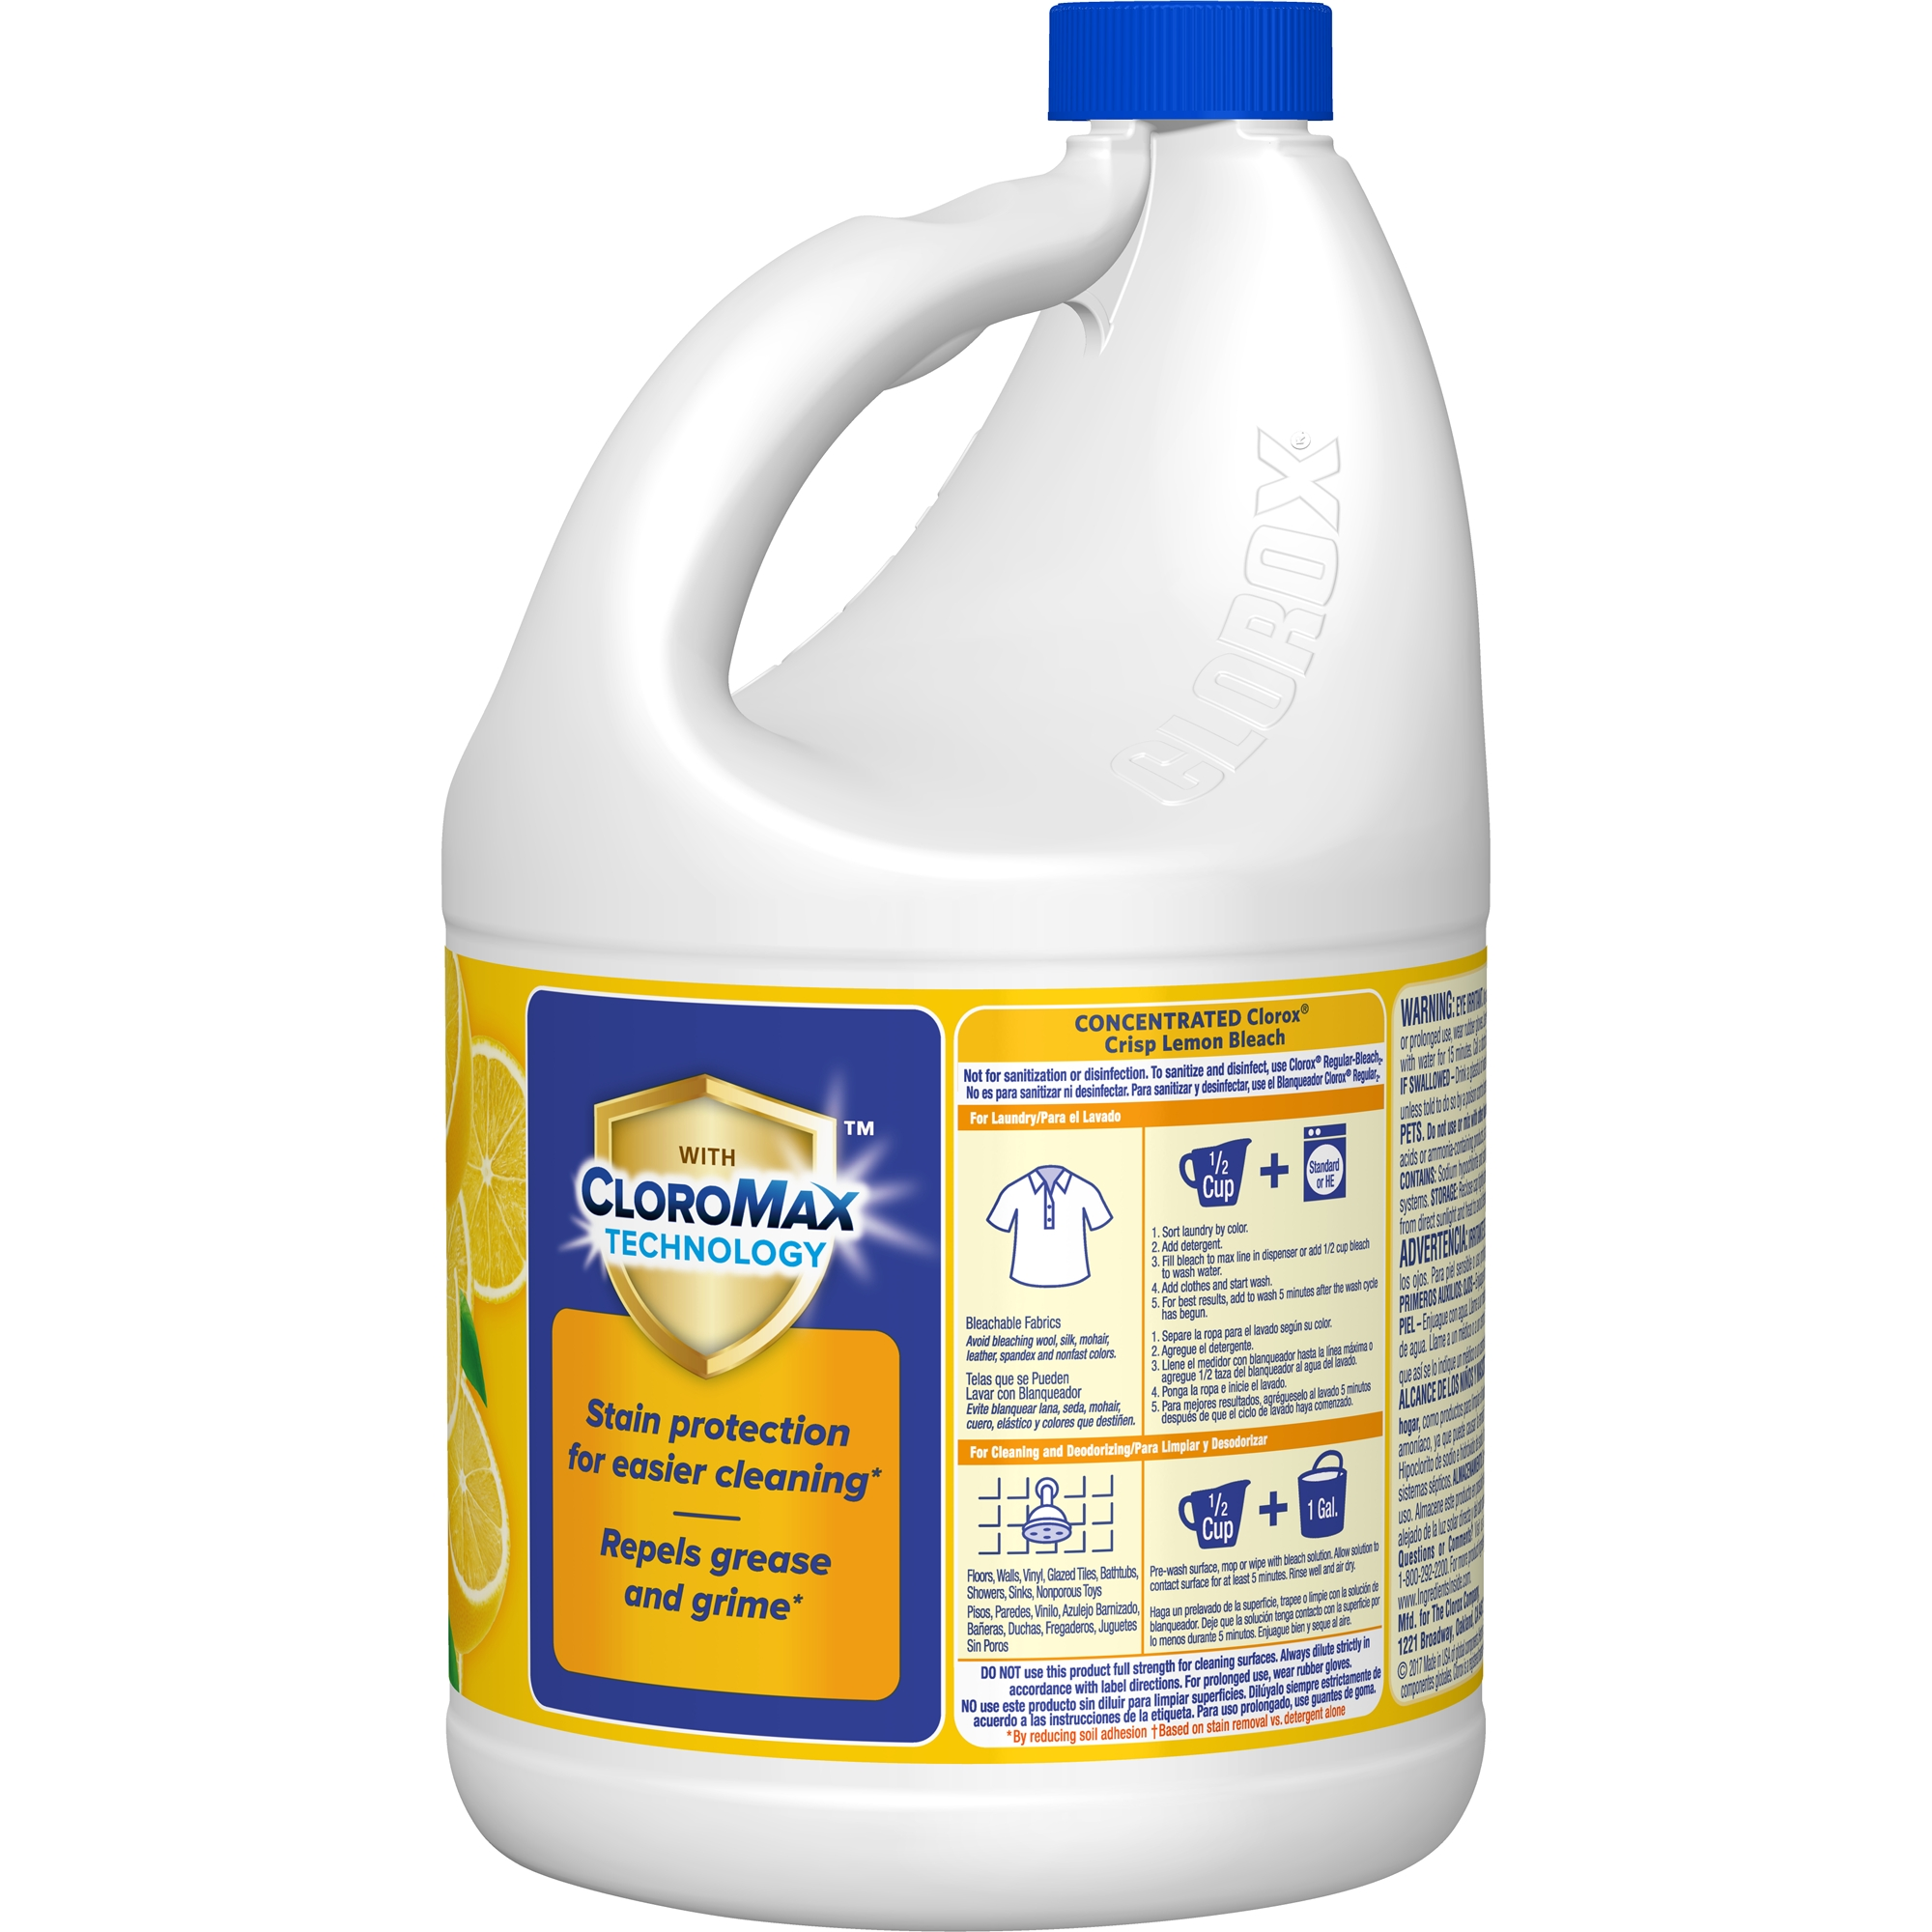 Msds Sheet For Clorox Toilet Bowl Cleaner Clinging Bleach